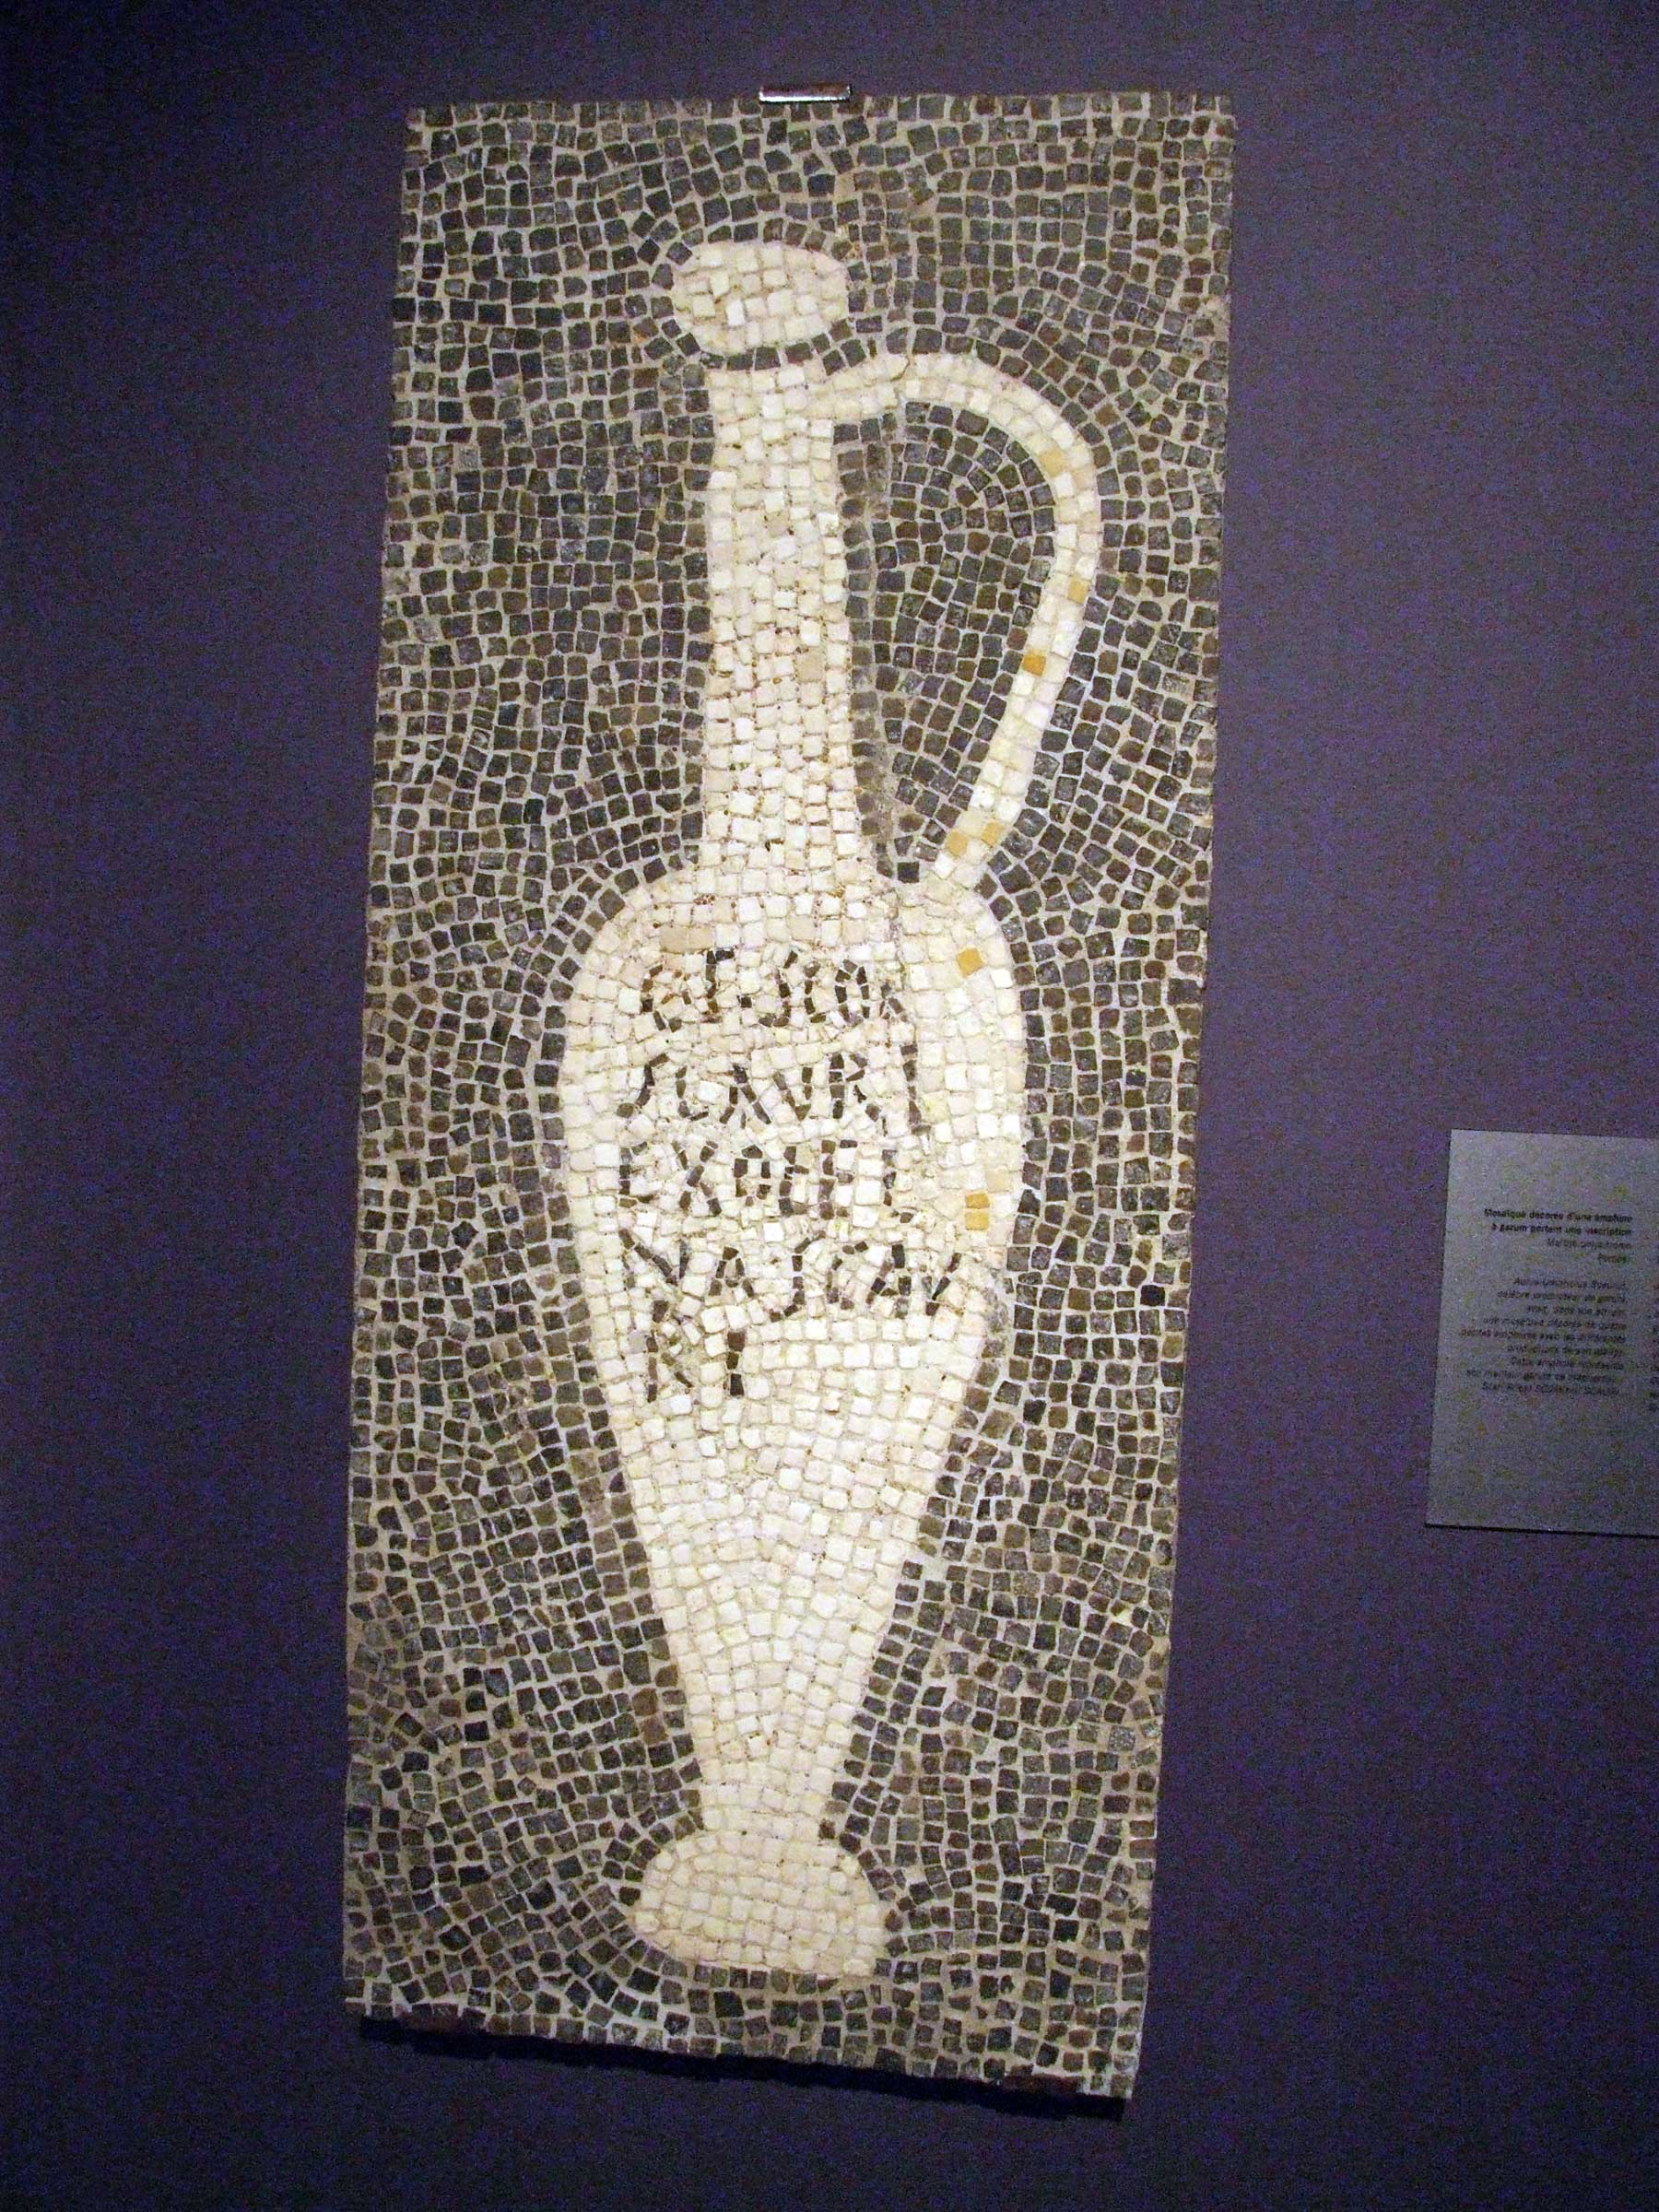 Garum jug mosaic found at Pompeii